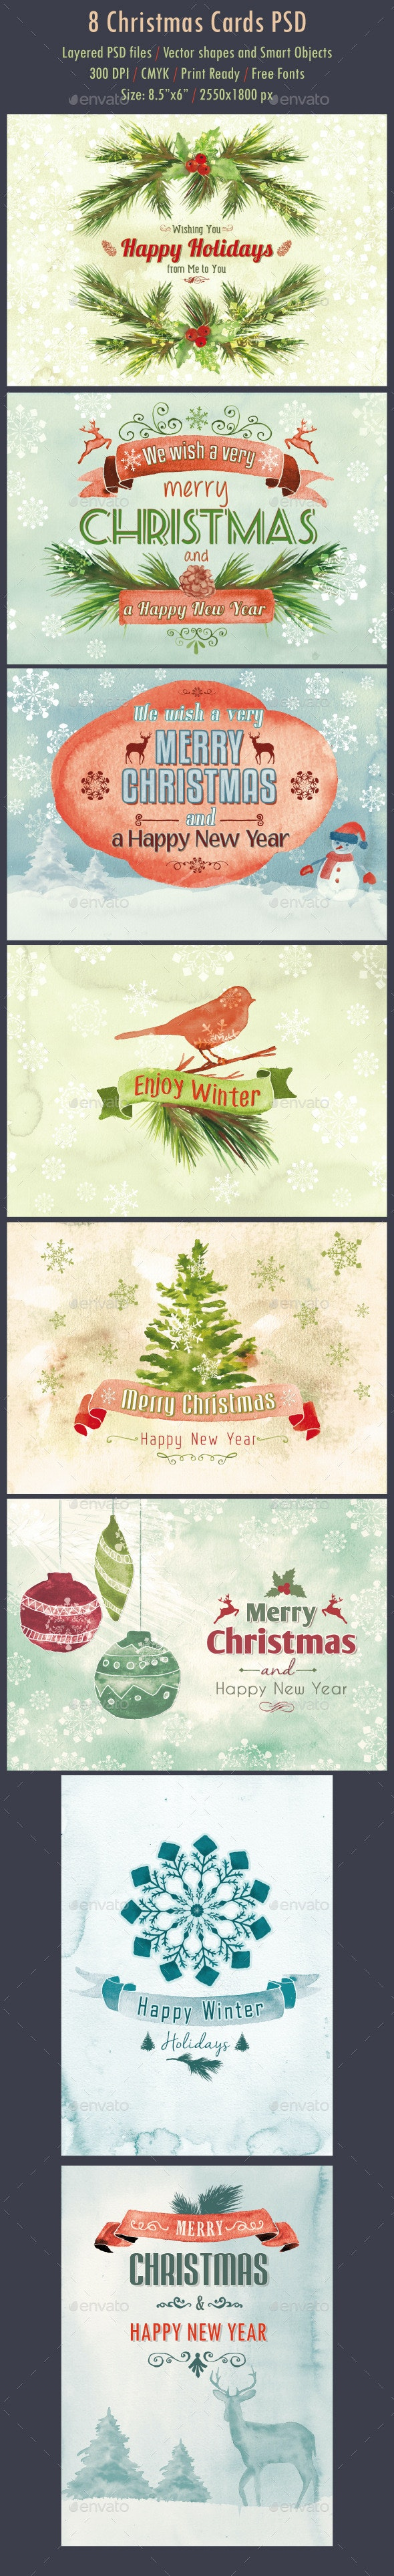 8 Watercolor Christmas Cards PSD